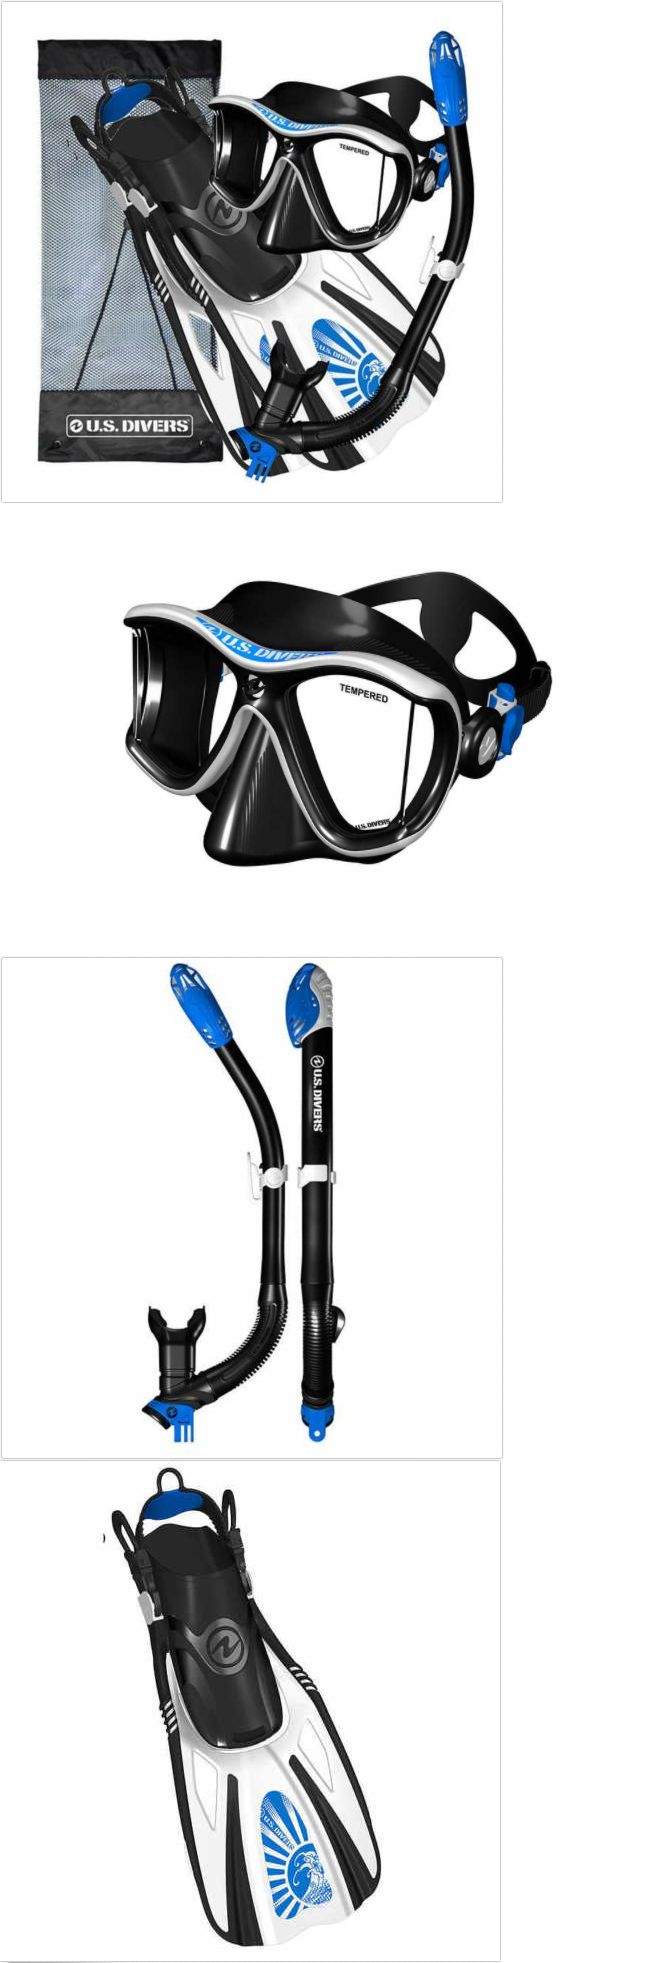 Snorkels and Sets 71162: Us Divers Panoramic View Adult Snorkeling Gear Set Mask+Fins+Bag ~~Select Size~~ -> BUY IT NOW ONLY: $59.91 on eBay!